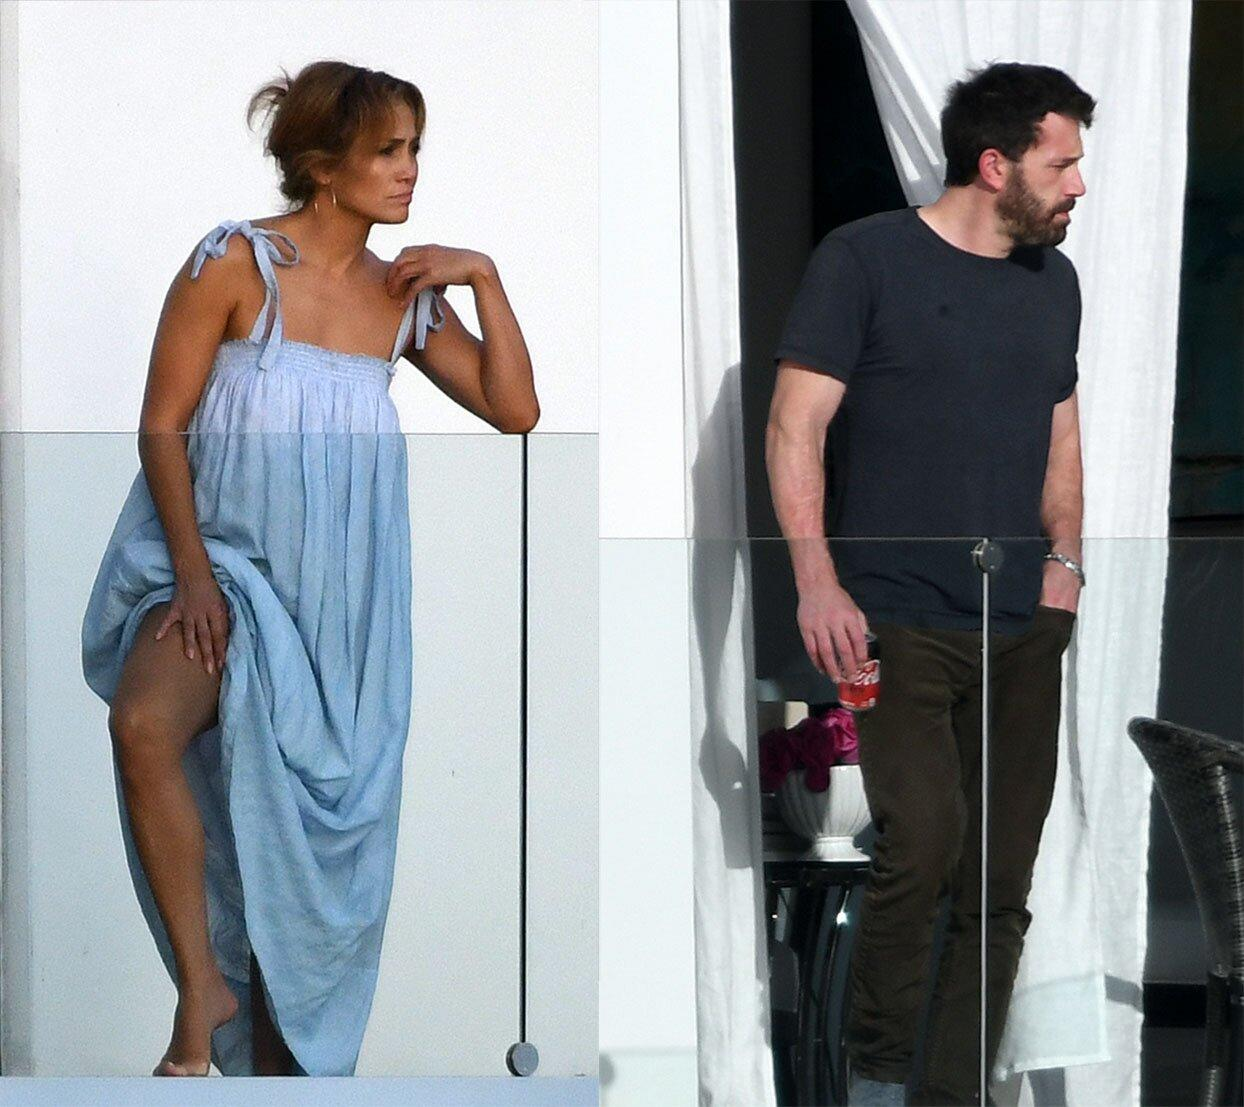 Jennifer Lopez appears again in the most affectionate way with another ex-girlfriend!